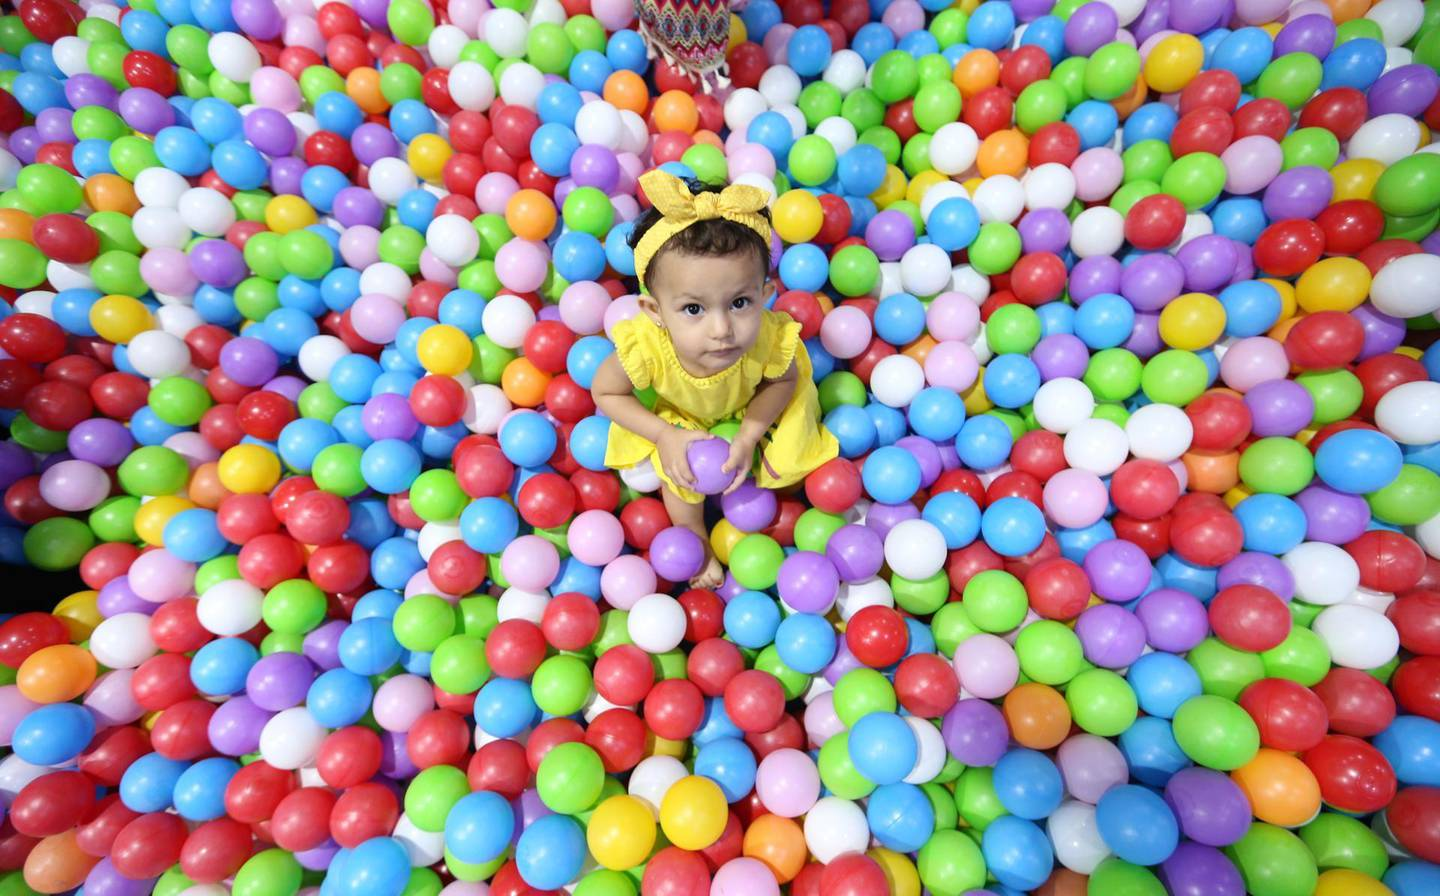 epa06963190 Children enjoy the first day of the Muslim holiday of holy festival of Eid Al Adha at Kids Fun House in Qanat Al Qasba in Gulf emirate of Sharjah, United Arab Emirates, 21 August 2018. Eid al-Adha is the holiest of the two Muslims holidays celebrated each year, it marks the yearly Muslim pilgrimage (Hajj) to visit Mecca, the holiest place in Islam. Muslims slaughter a sacrificial animal and split the meat into three parts, one for the family, one for friends and relatives, and one for the poor and needy.  EPA/ALI HAIDER